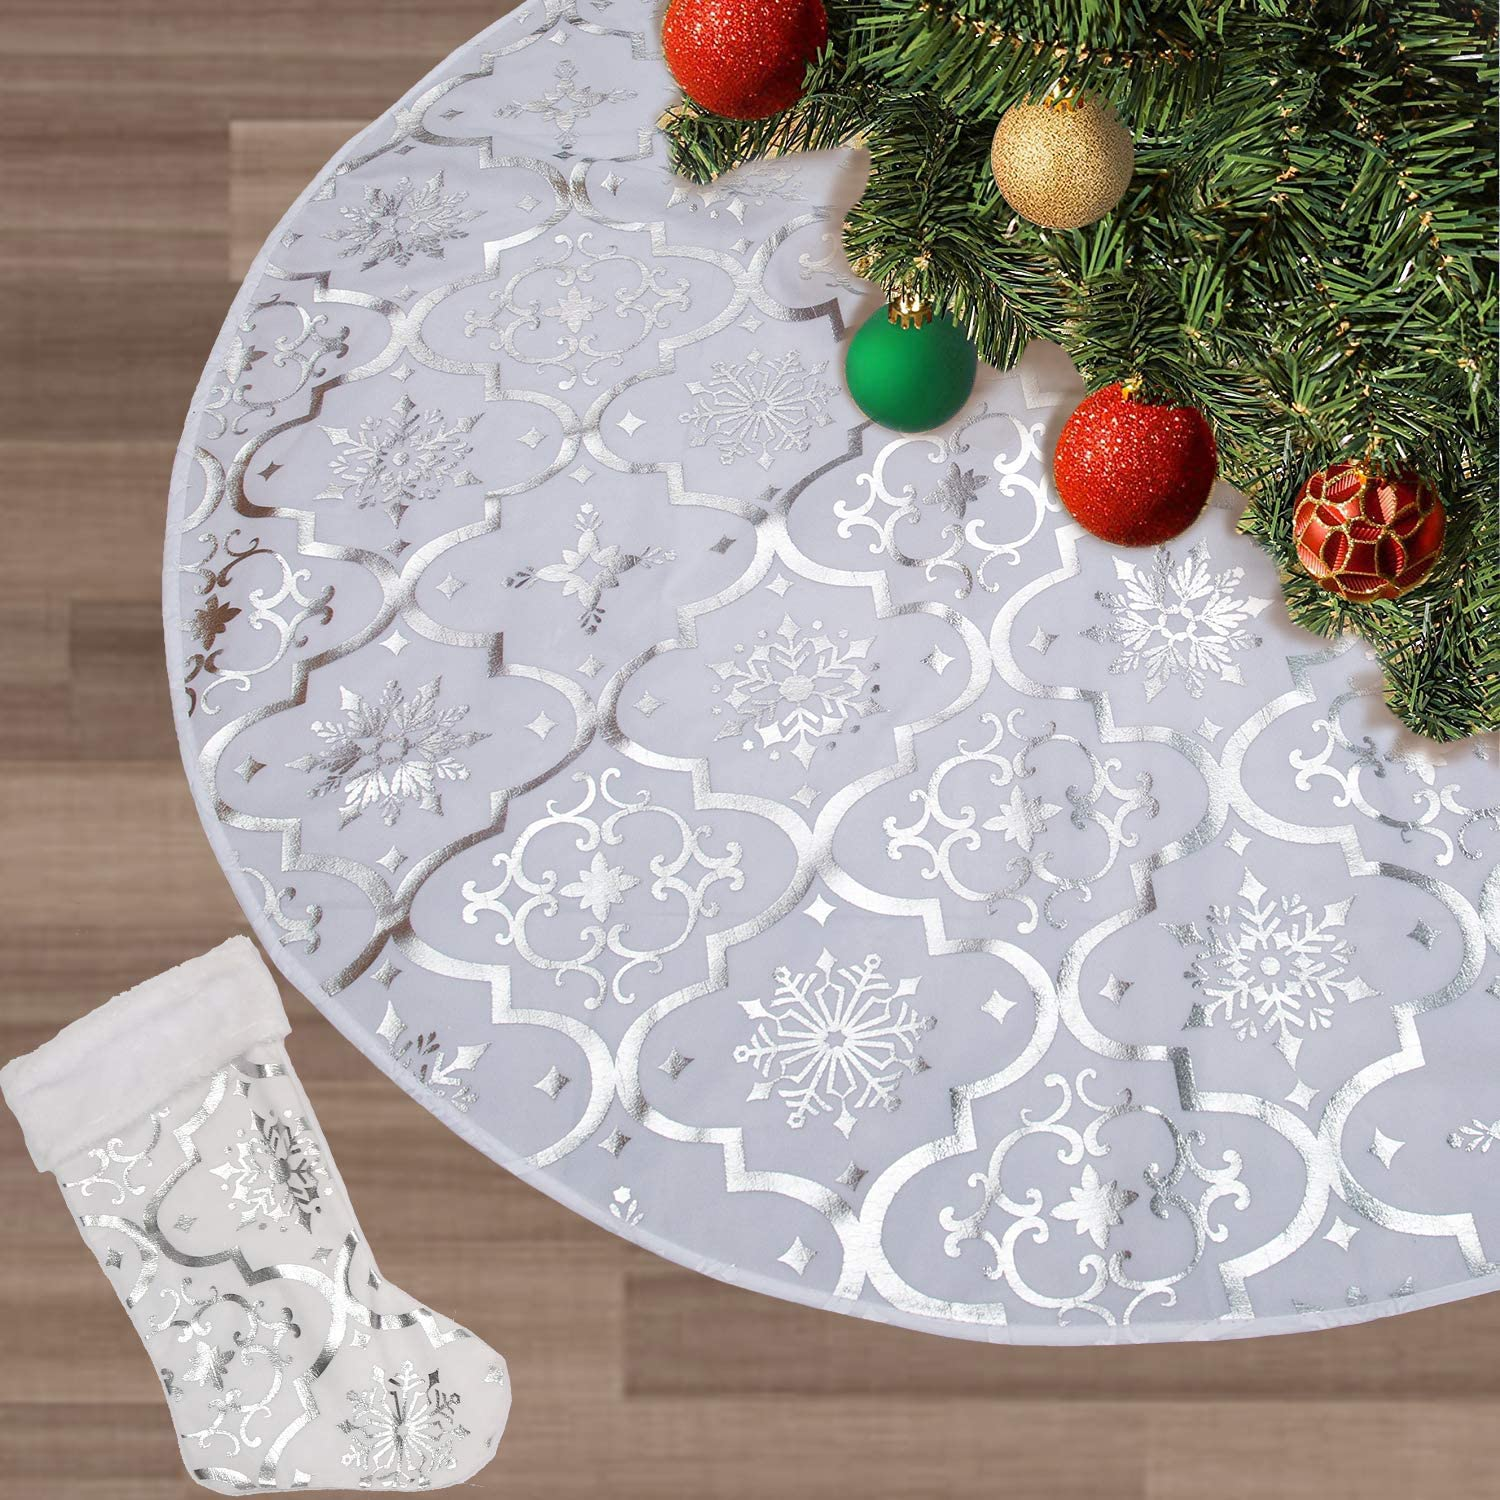 FLASH WORLD Christmas Tree Skirt,48 inches Large Xmas Tree Skirts with Snowy Pattern for Christmas Tree Decorations (White)